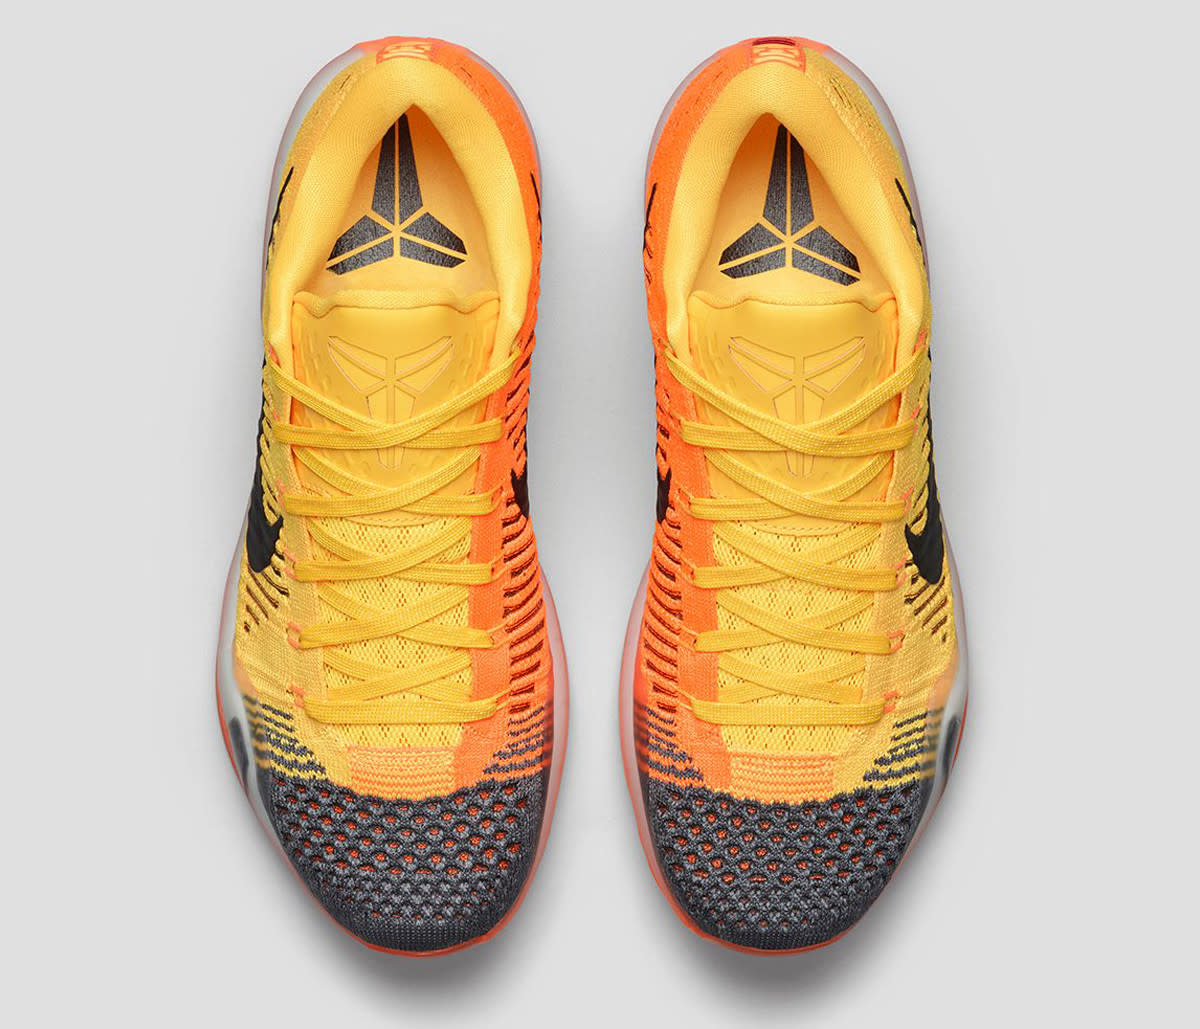 nike-kobe-x-elite-rivalry-02